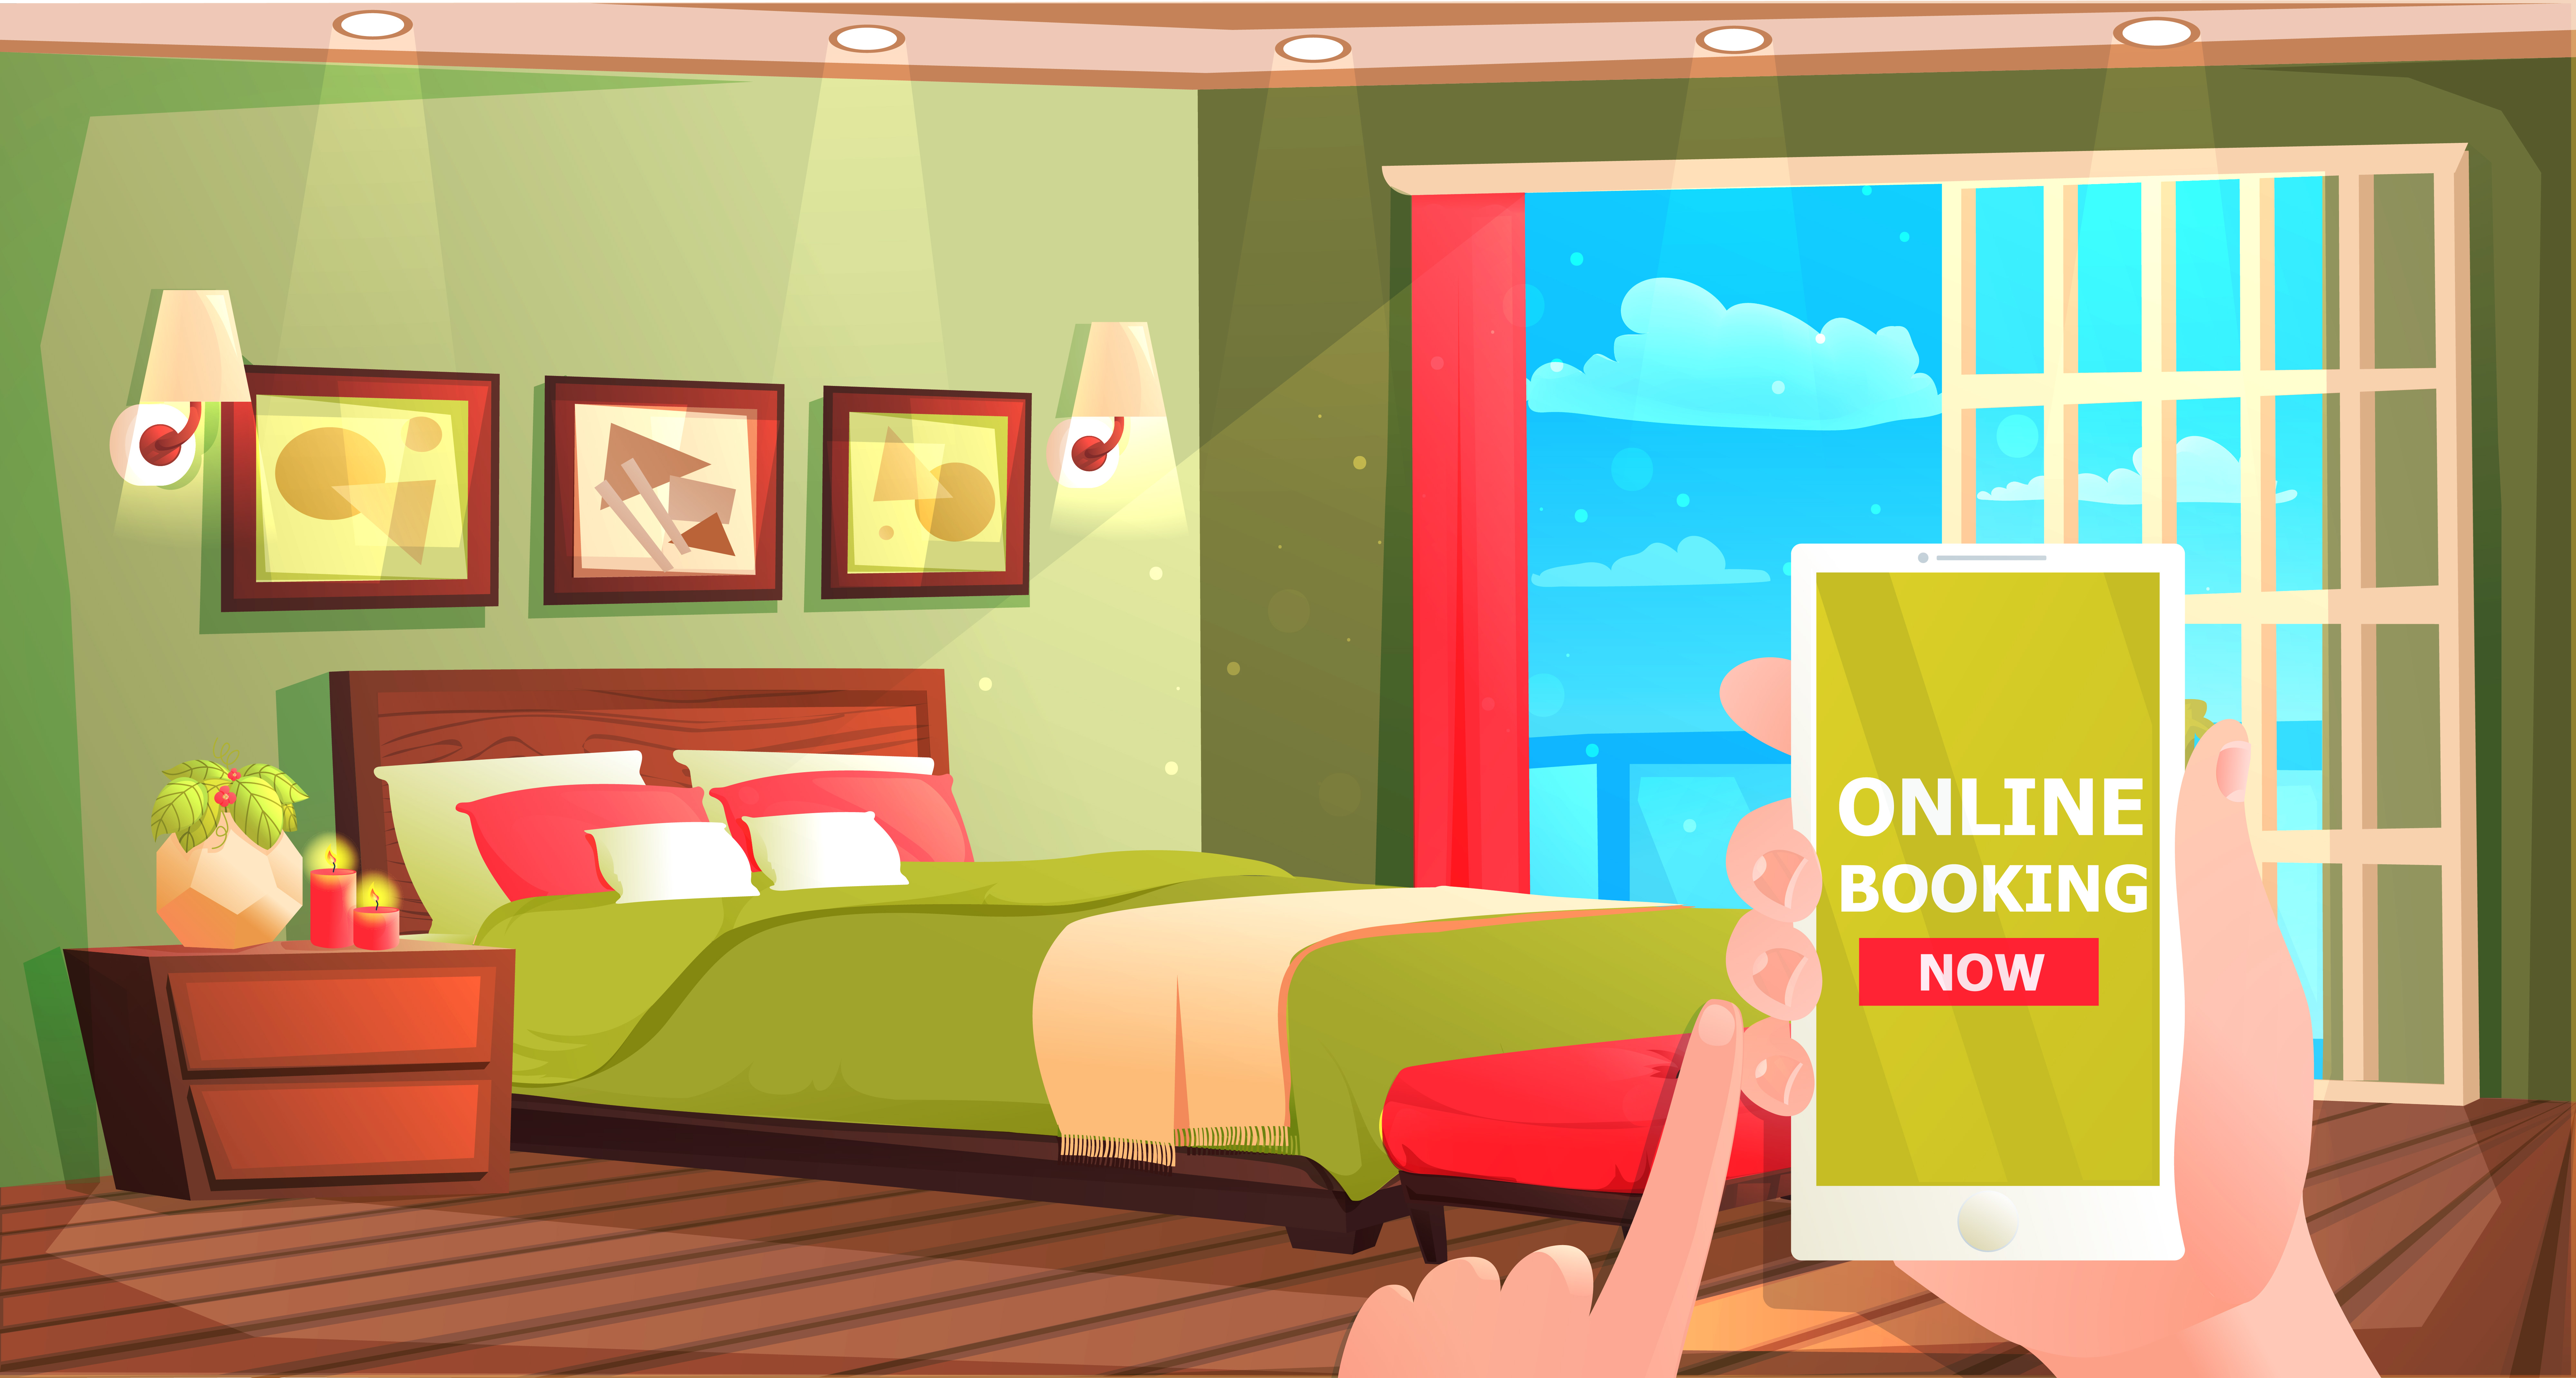 clipart freeuse stock Hotel online booking banner. Vector cartoons room